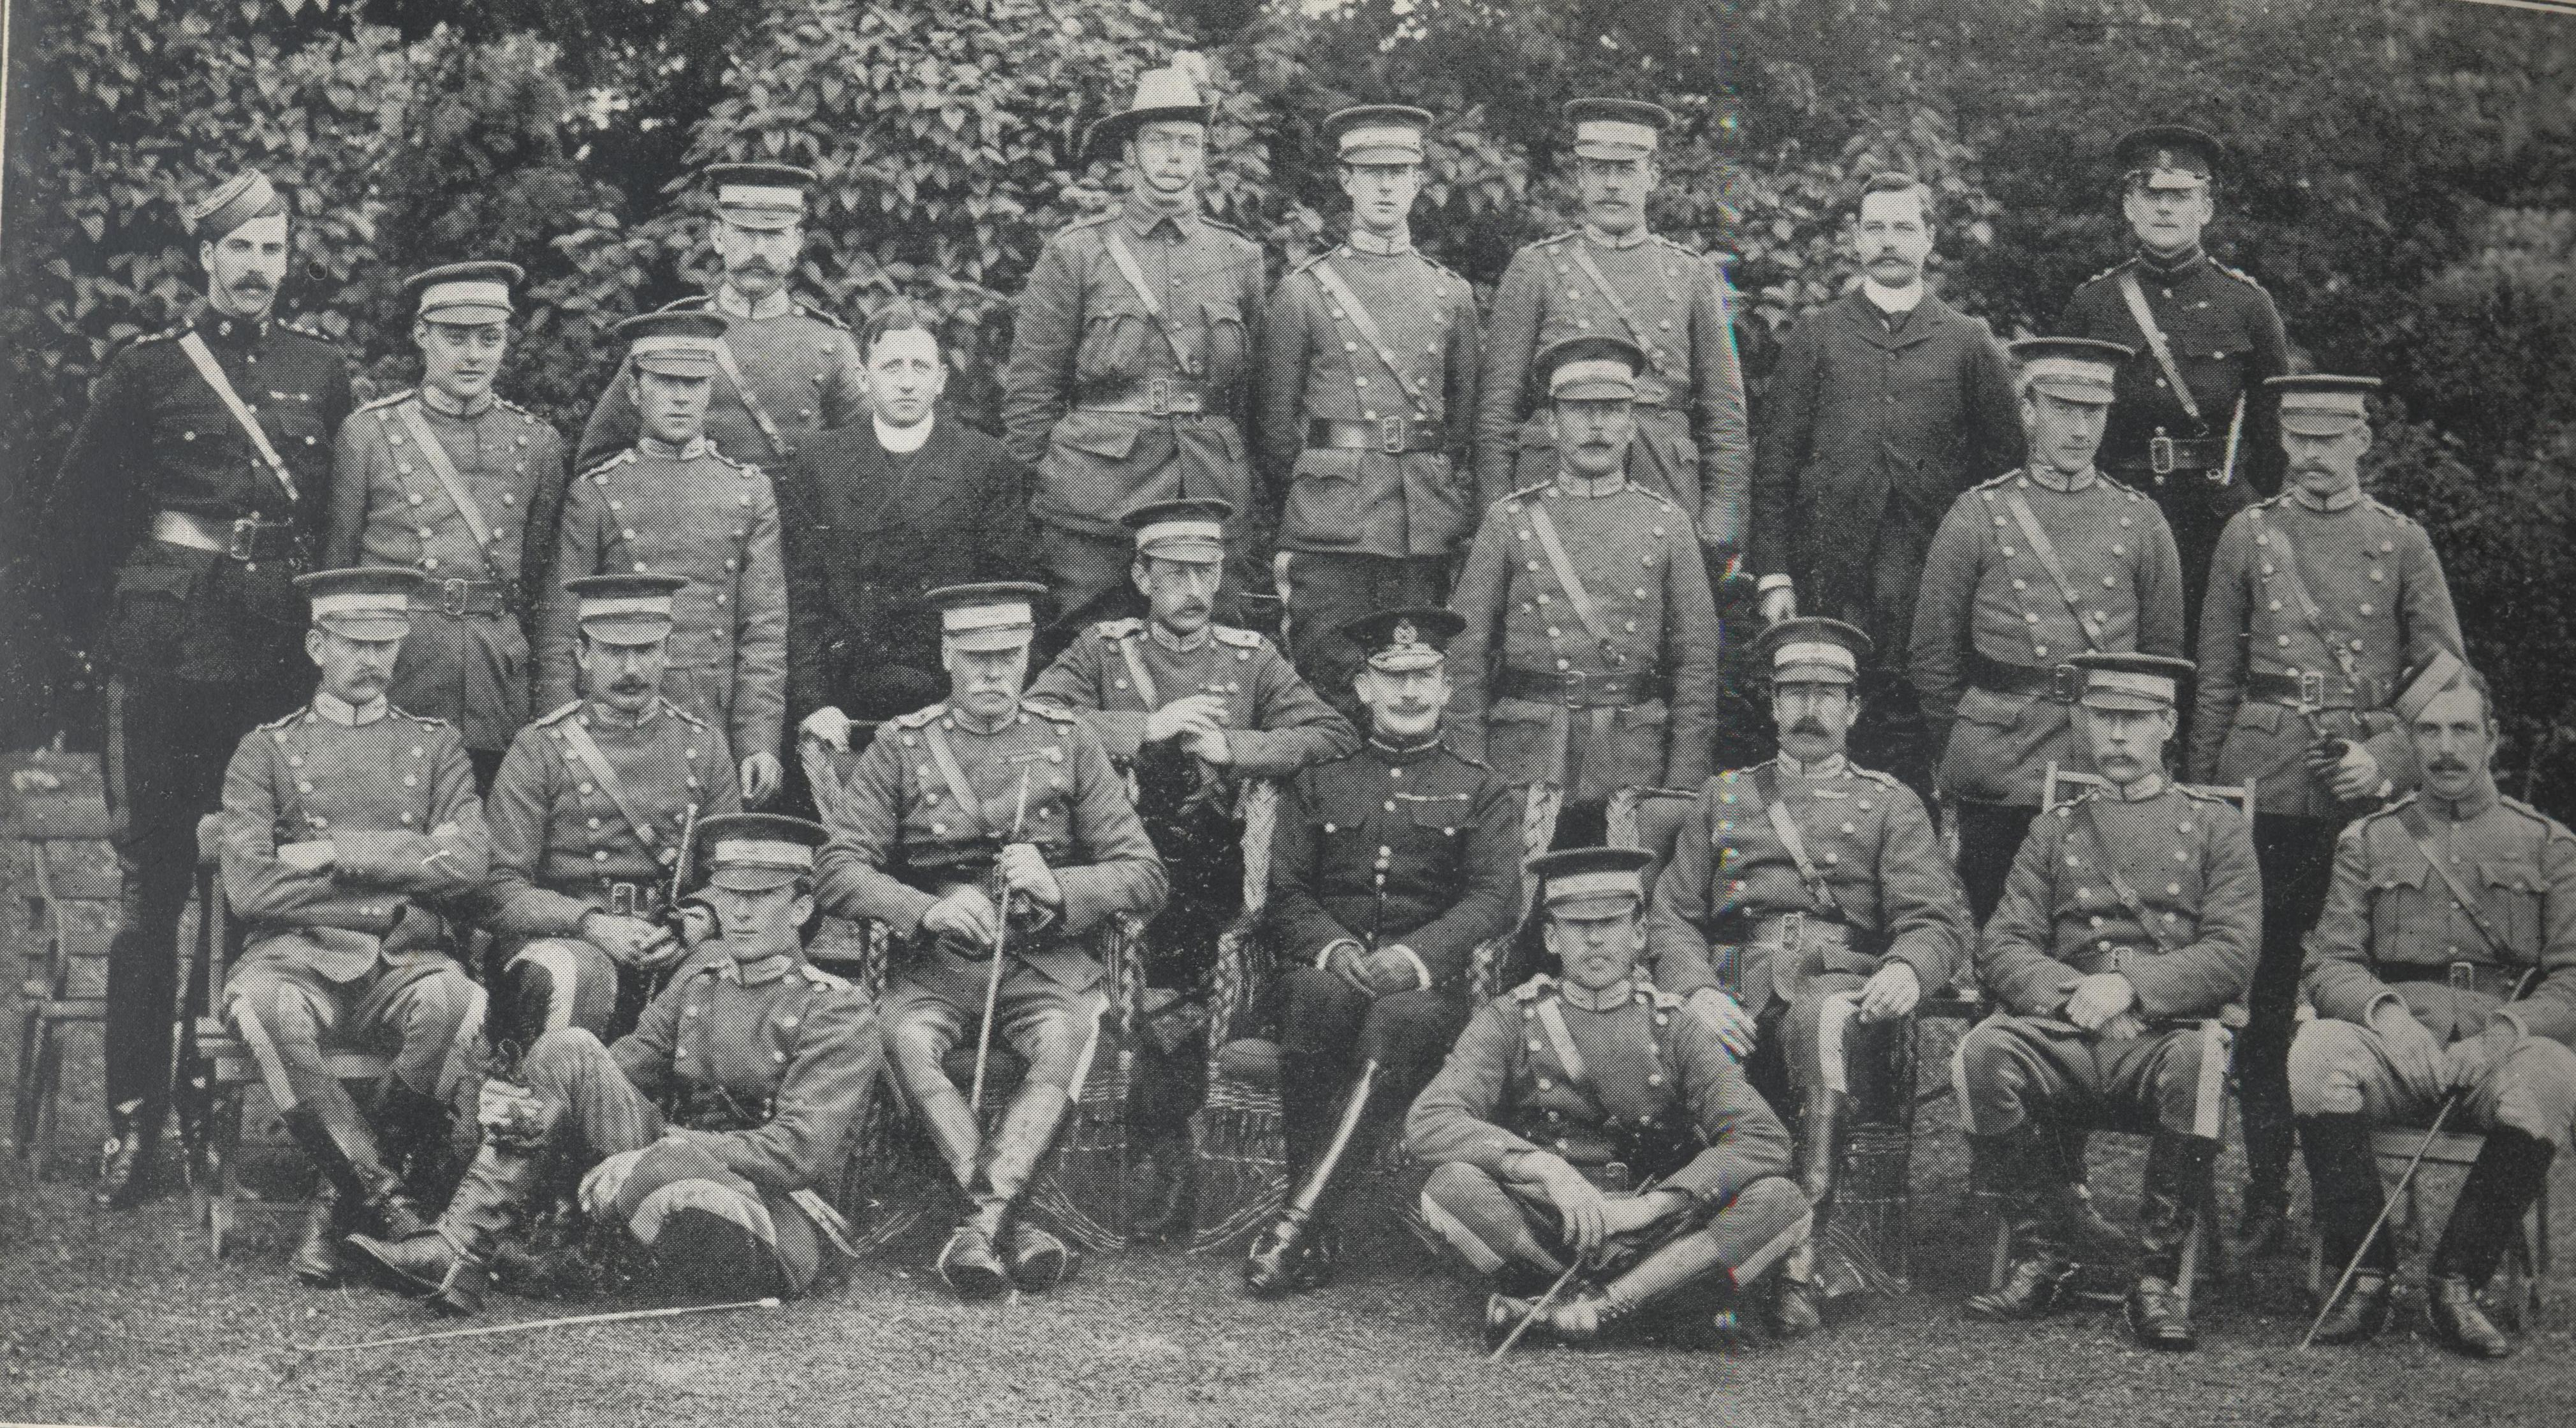 Officers in 1903